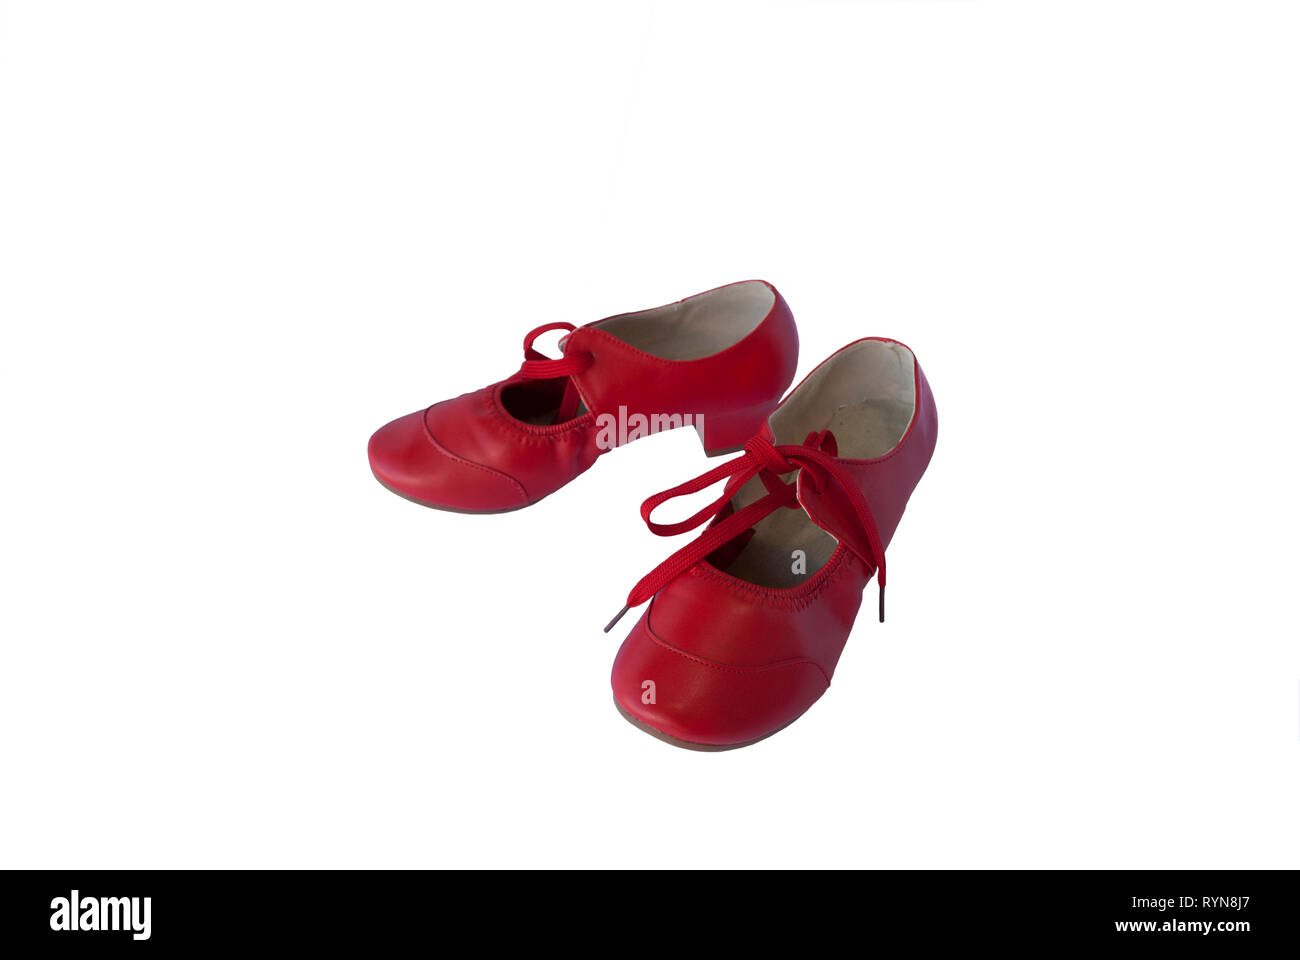 820e0a766b08 Red leather pair of shoes for female dancer. Traditional retro style  footwear